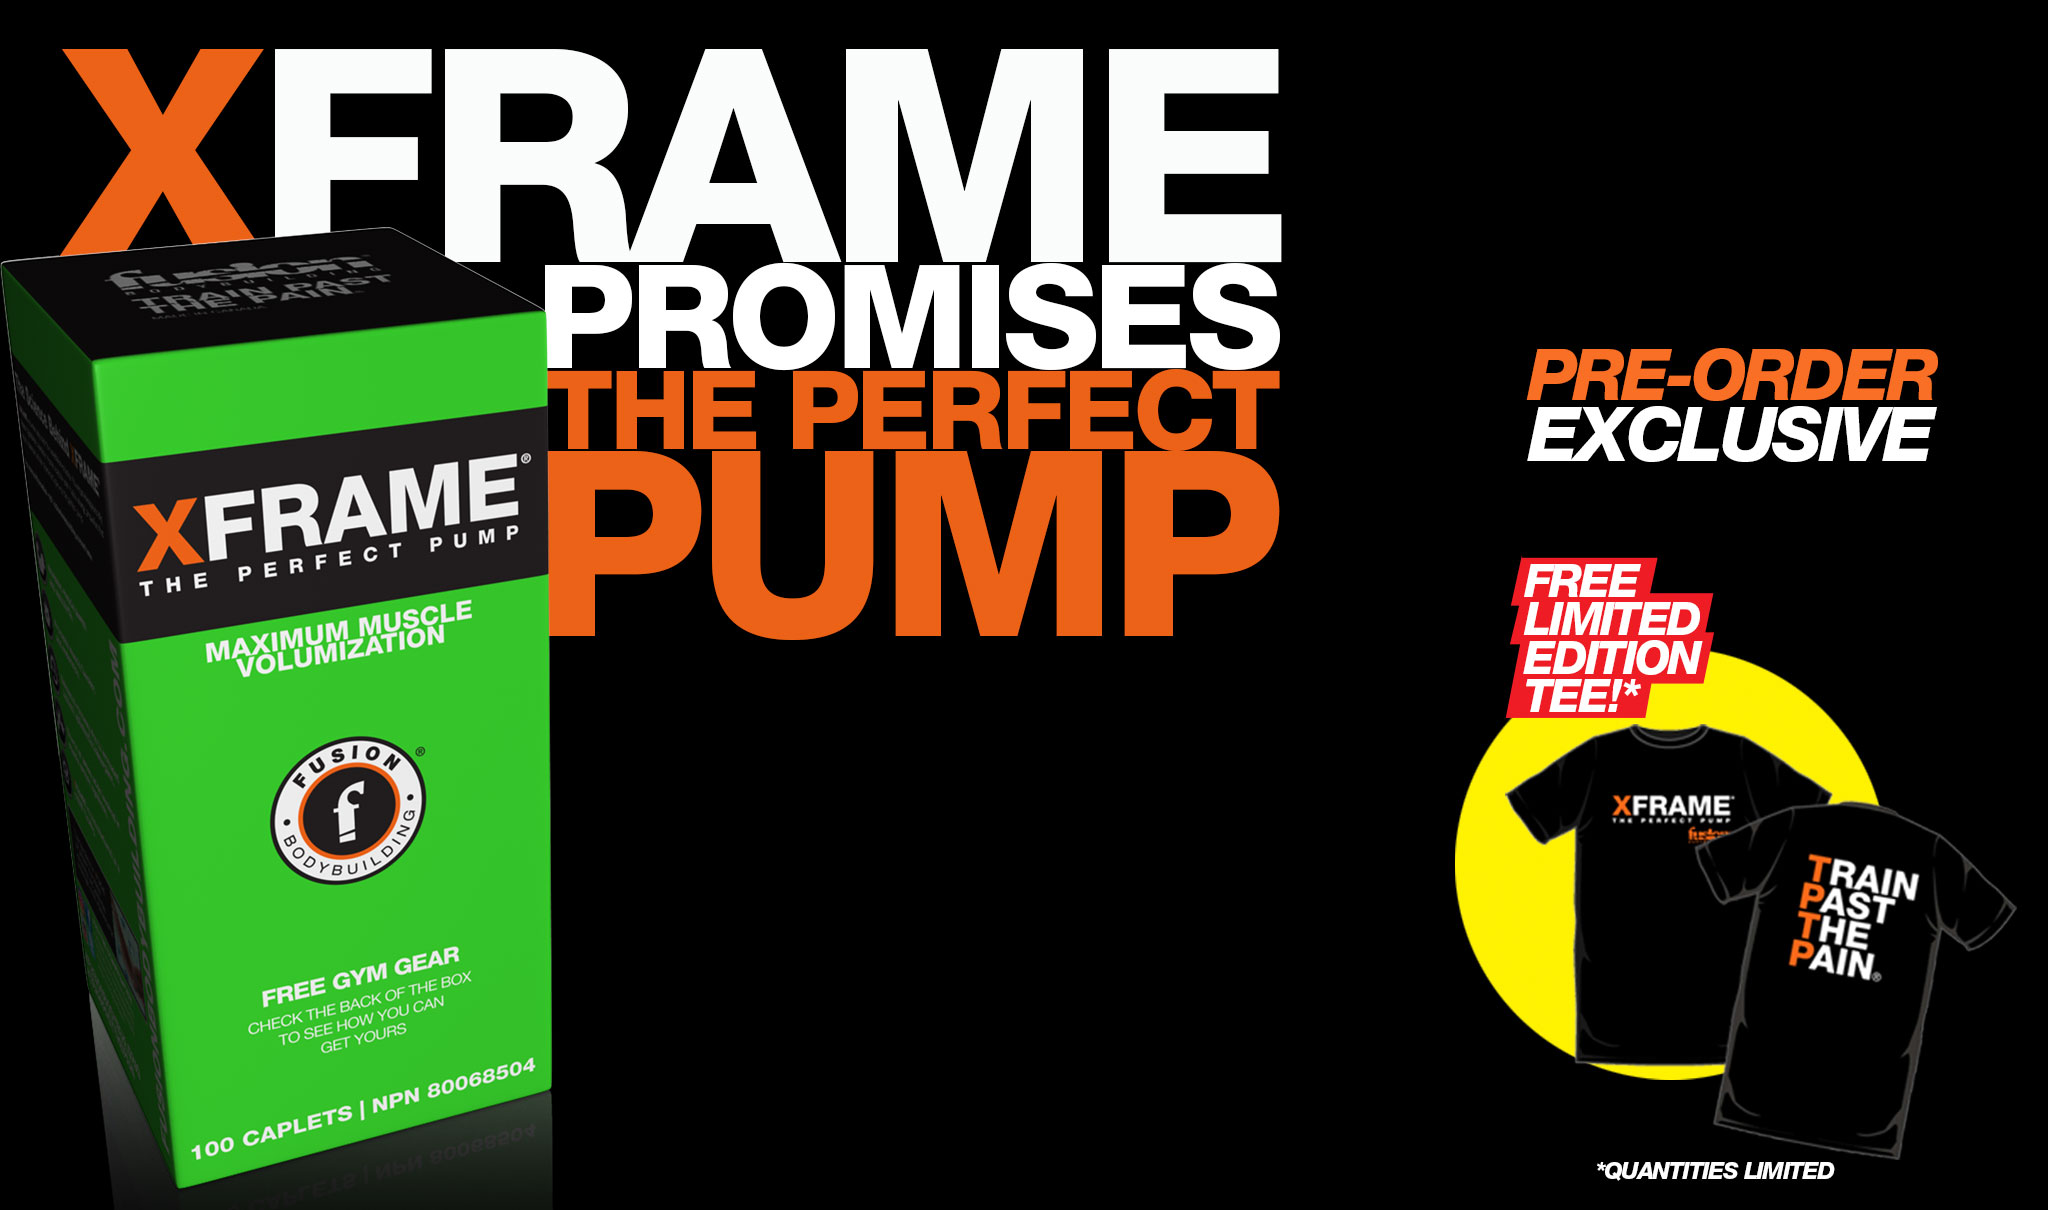 XFRAME - PRE-ORDER EXCLUSIVE!